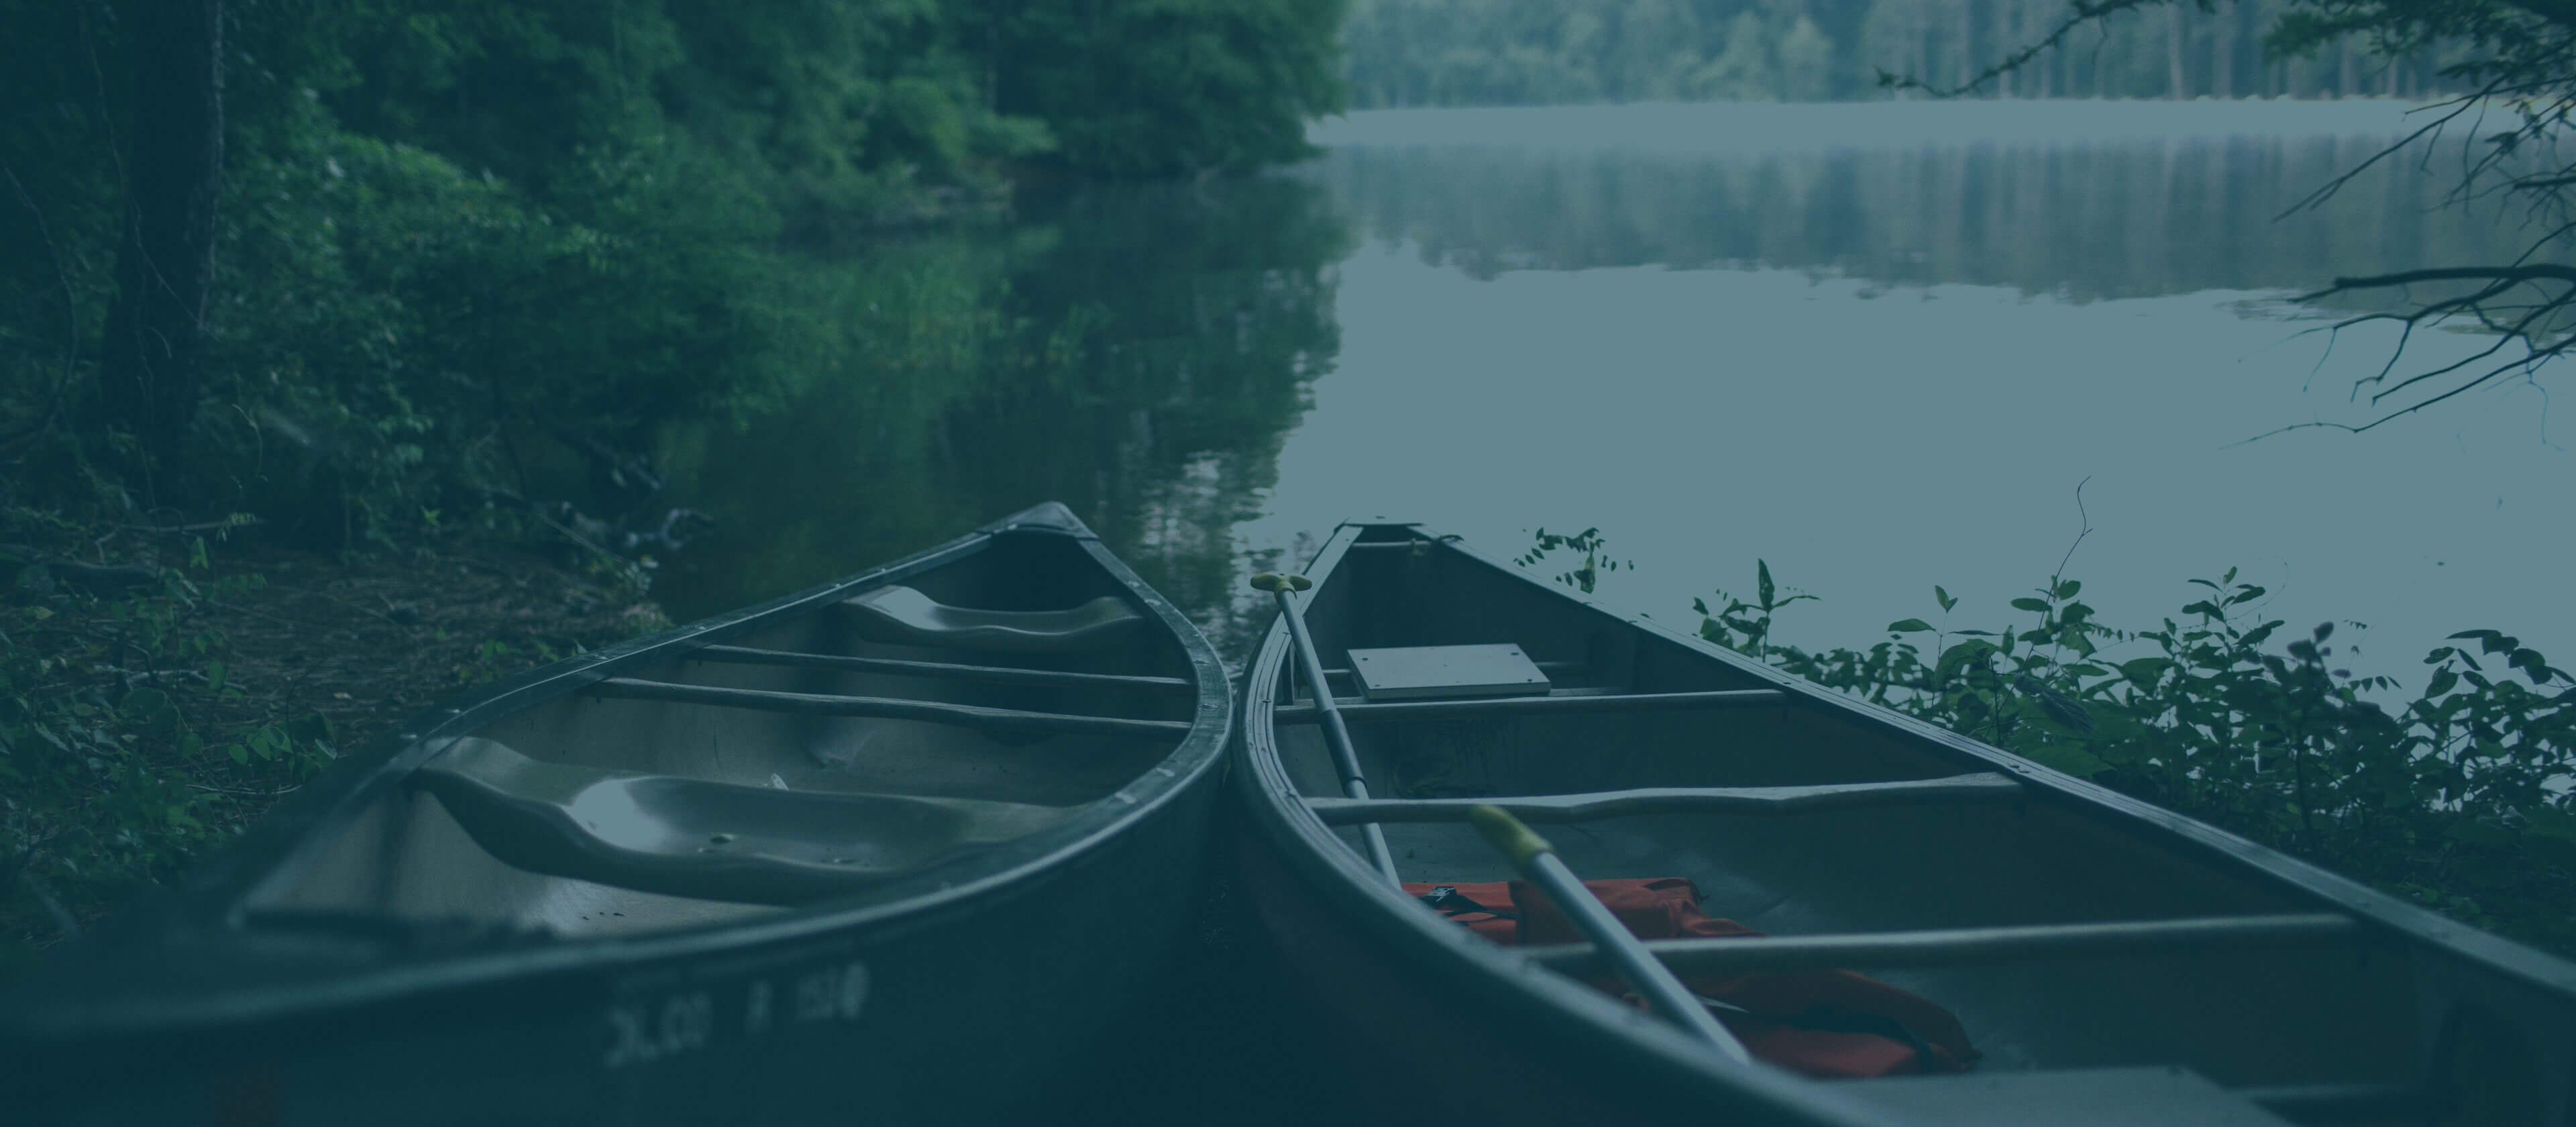 Two canoes by a lake